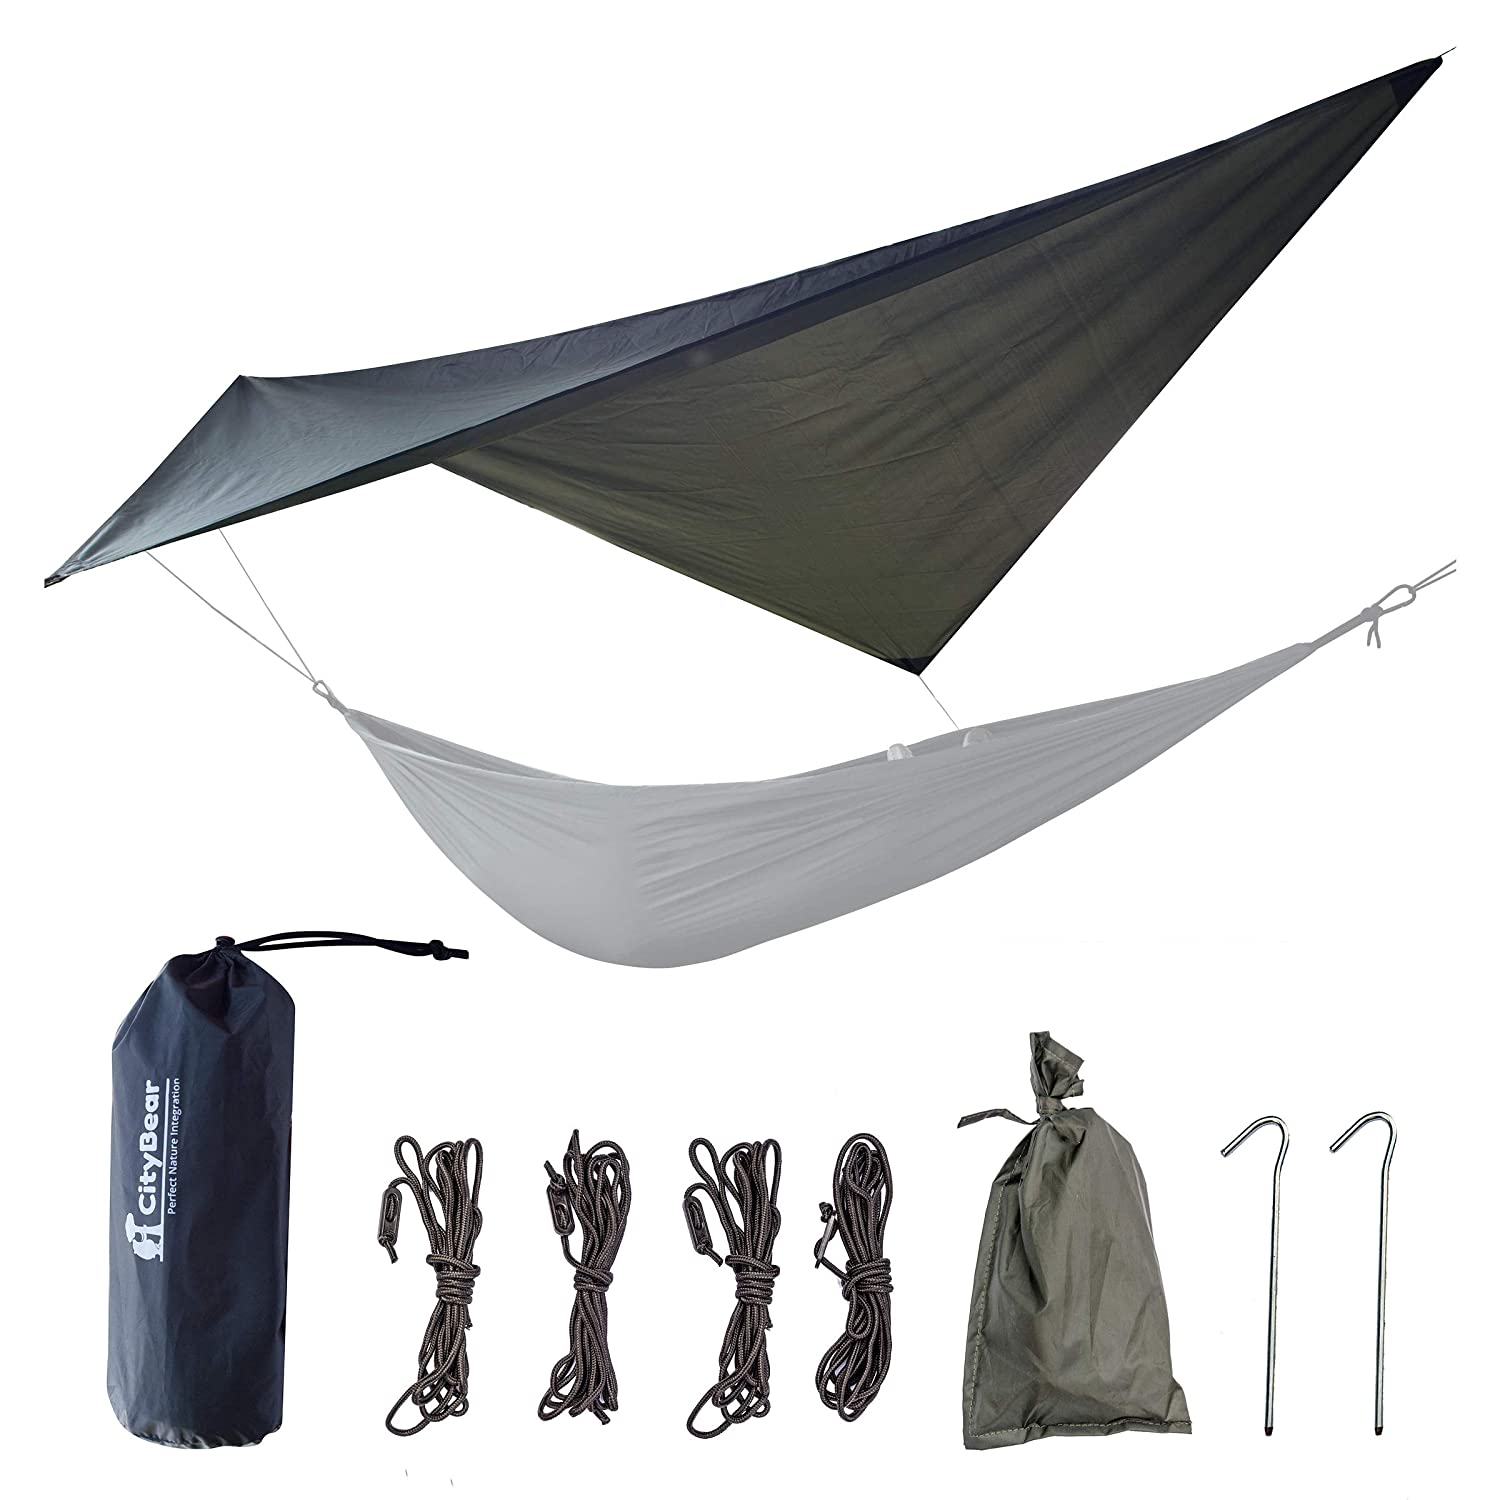 40250f20e9d Rain Fly Tent Tarp - Waterproof Lightweight Survival Gear Shelter for  Camping Backpacking and Outdoor Living